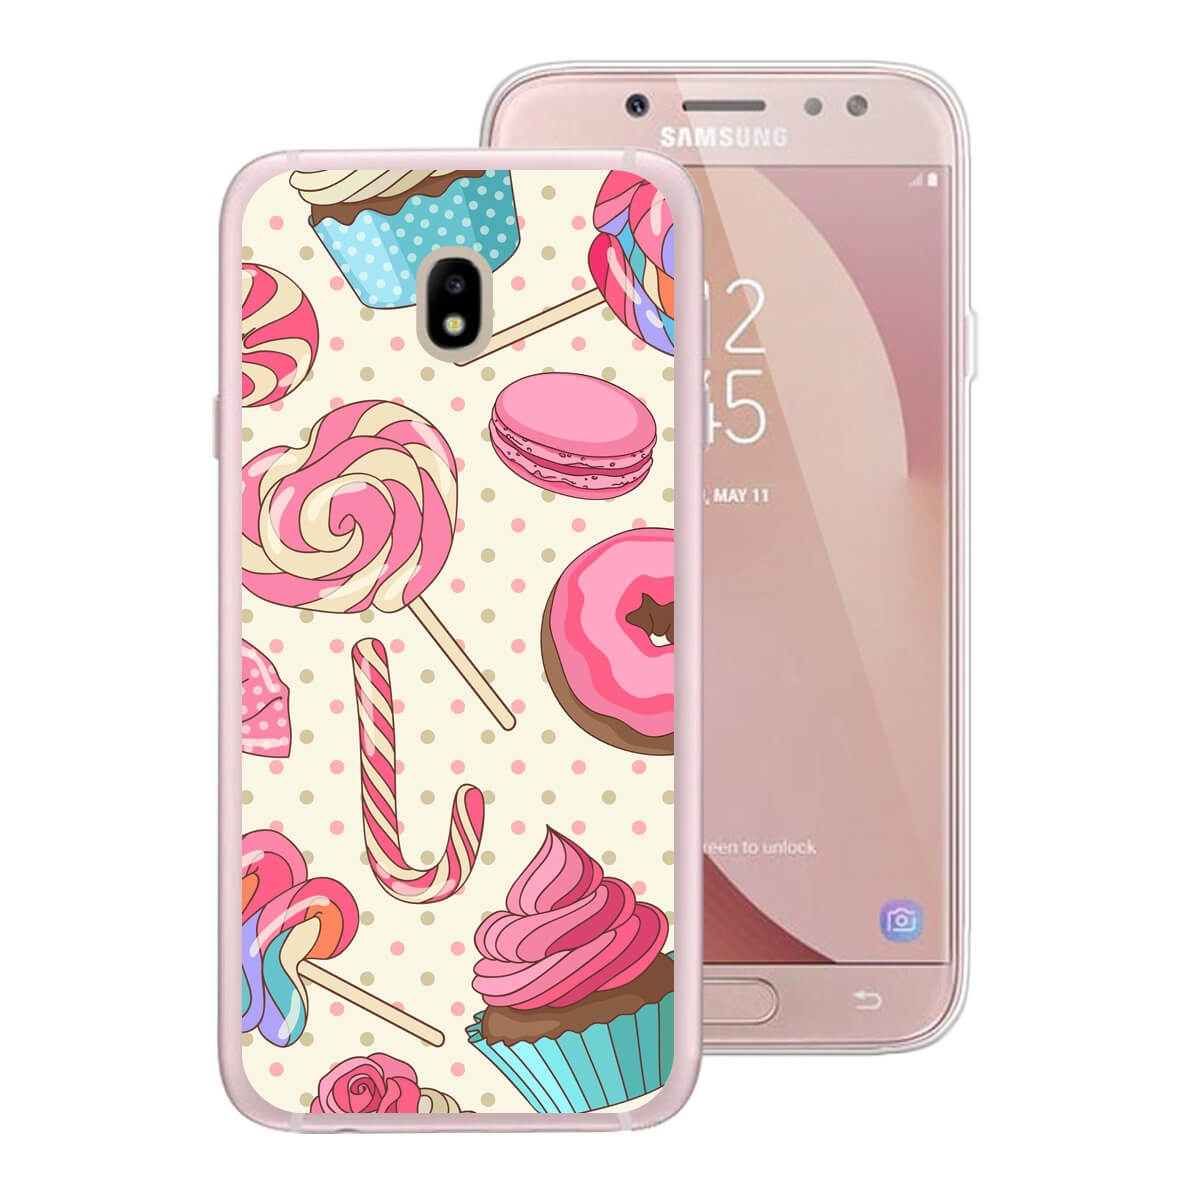 MY ART kryt Samsung Galaxy J5 2017 (J530) CANDY (030)